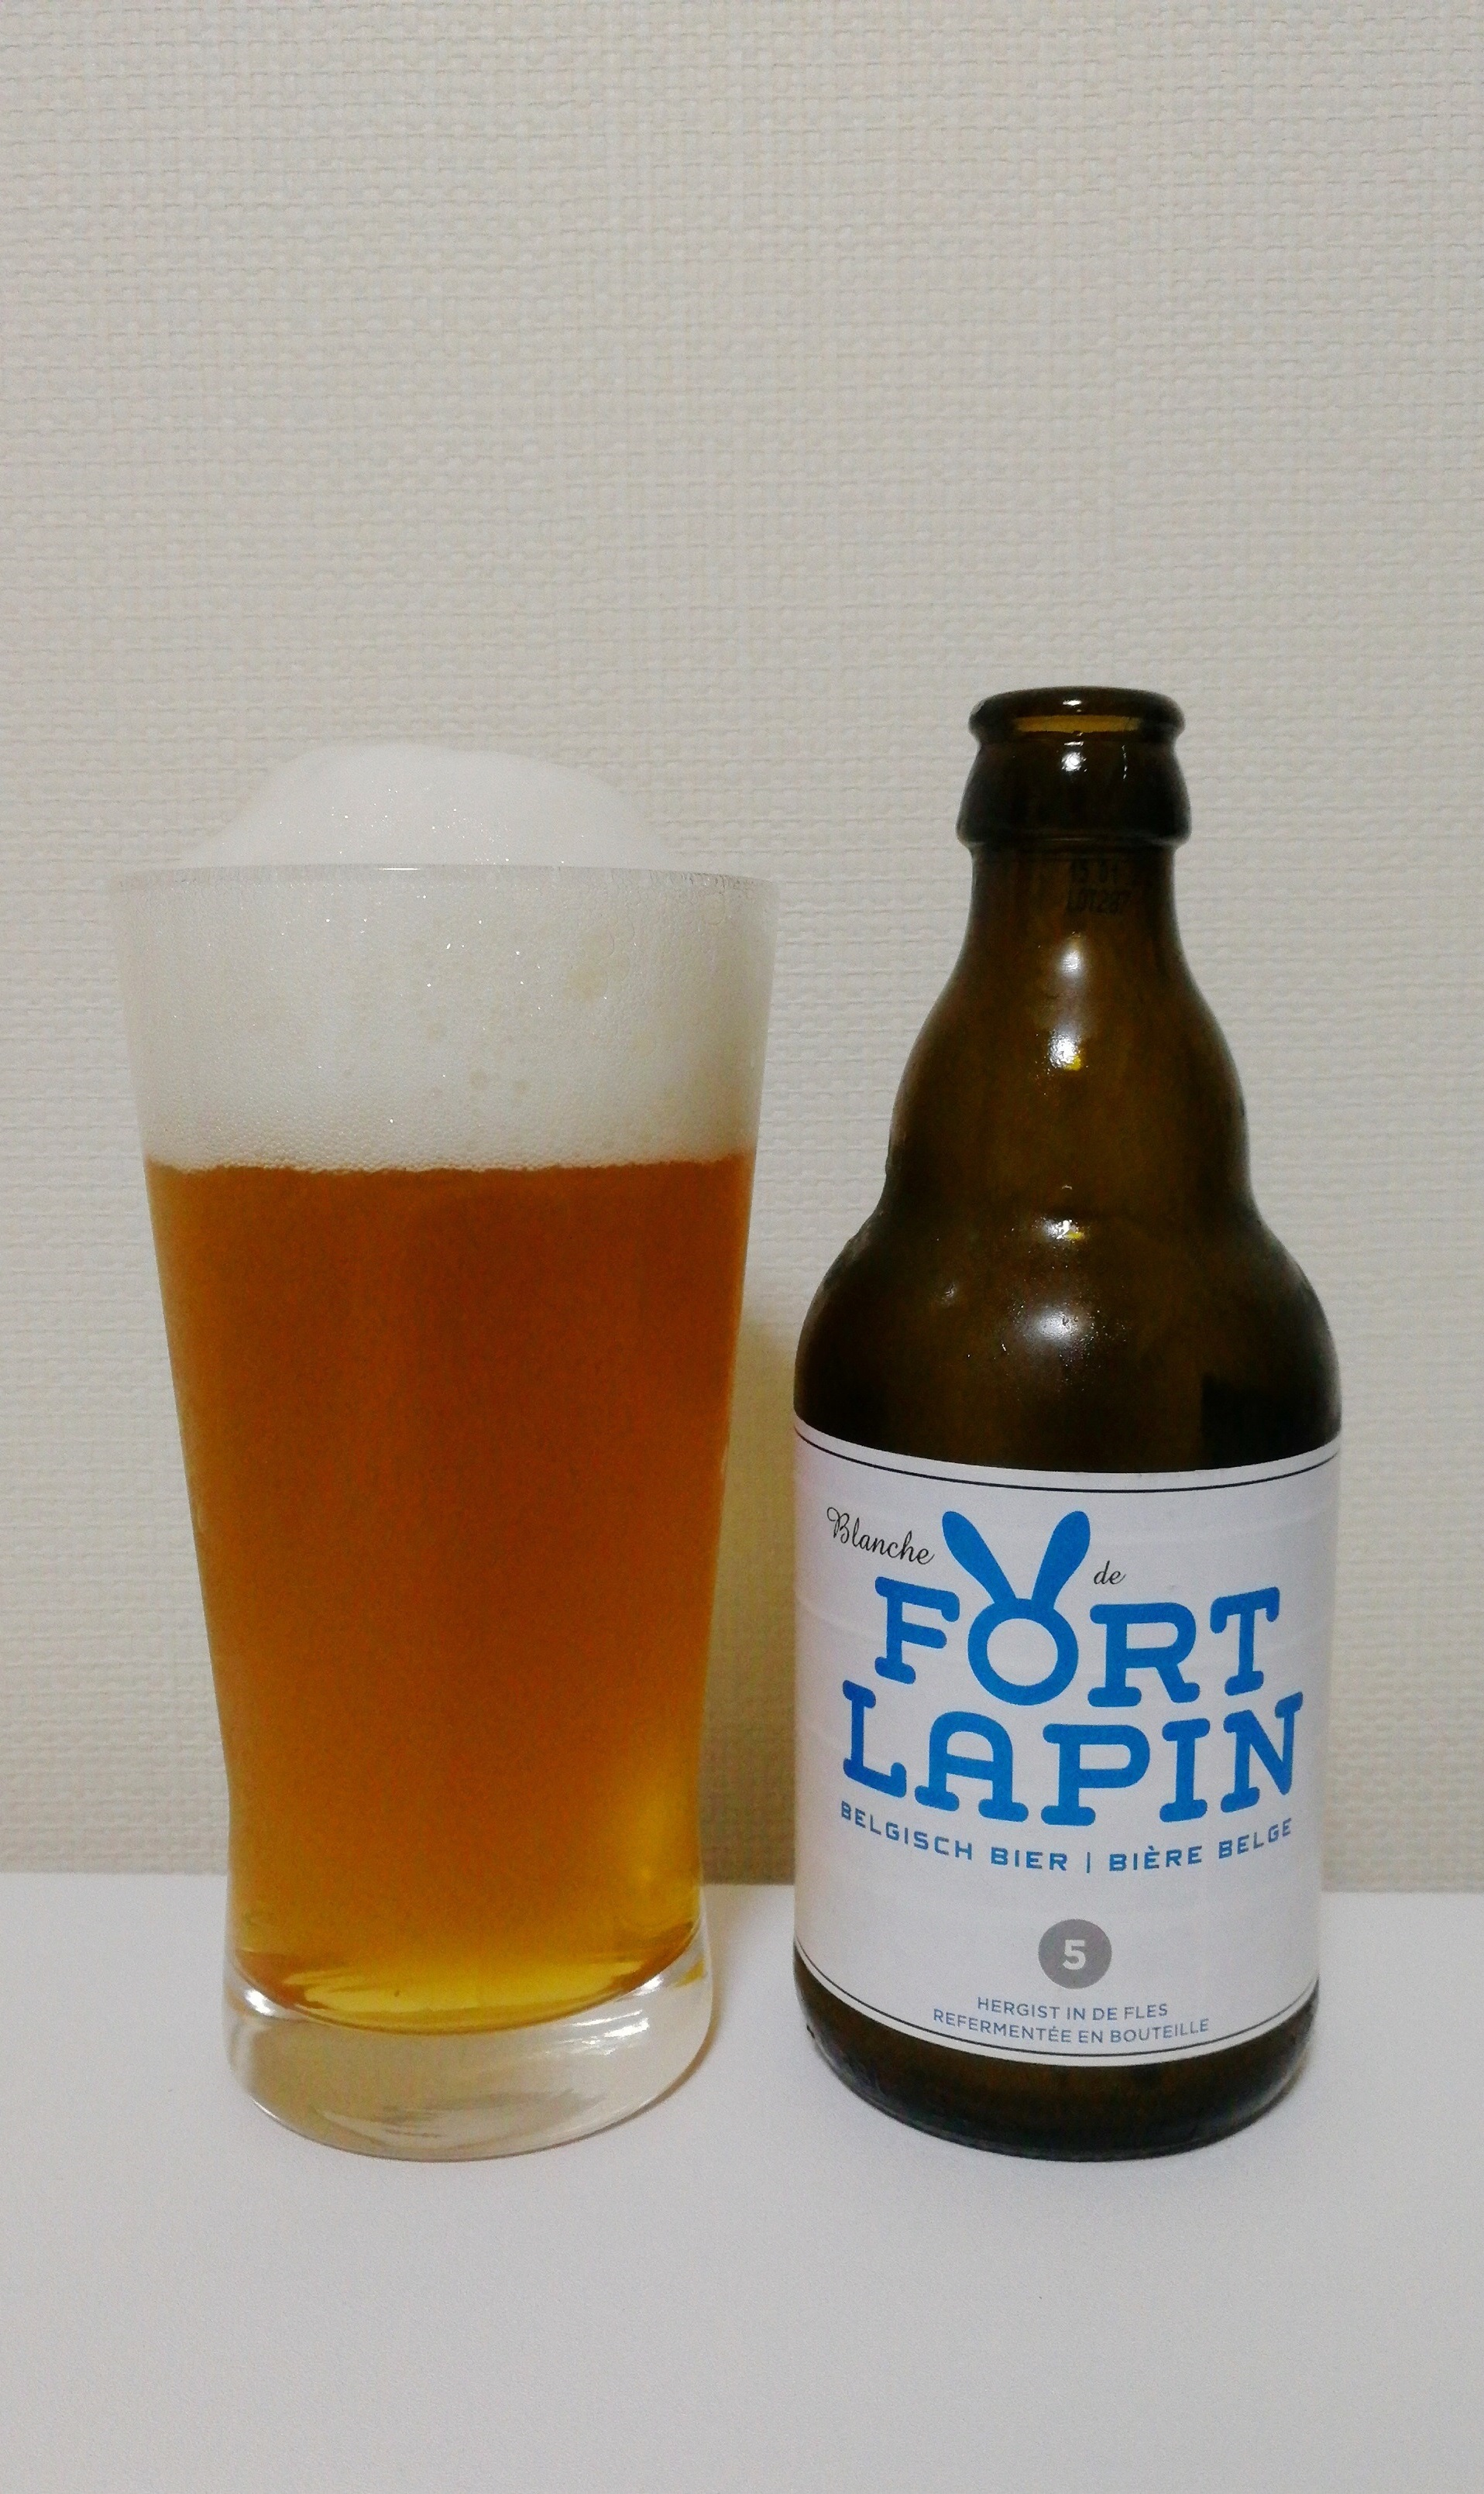 Brewery Fort Lapin Blanche